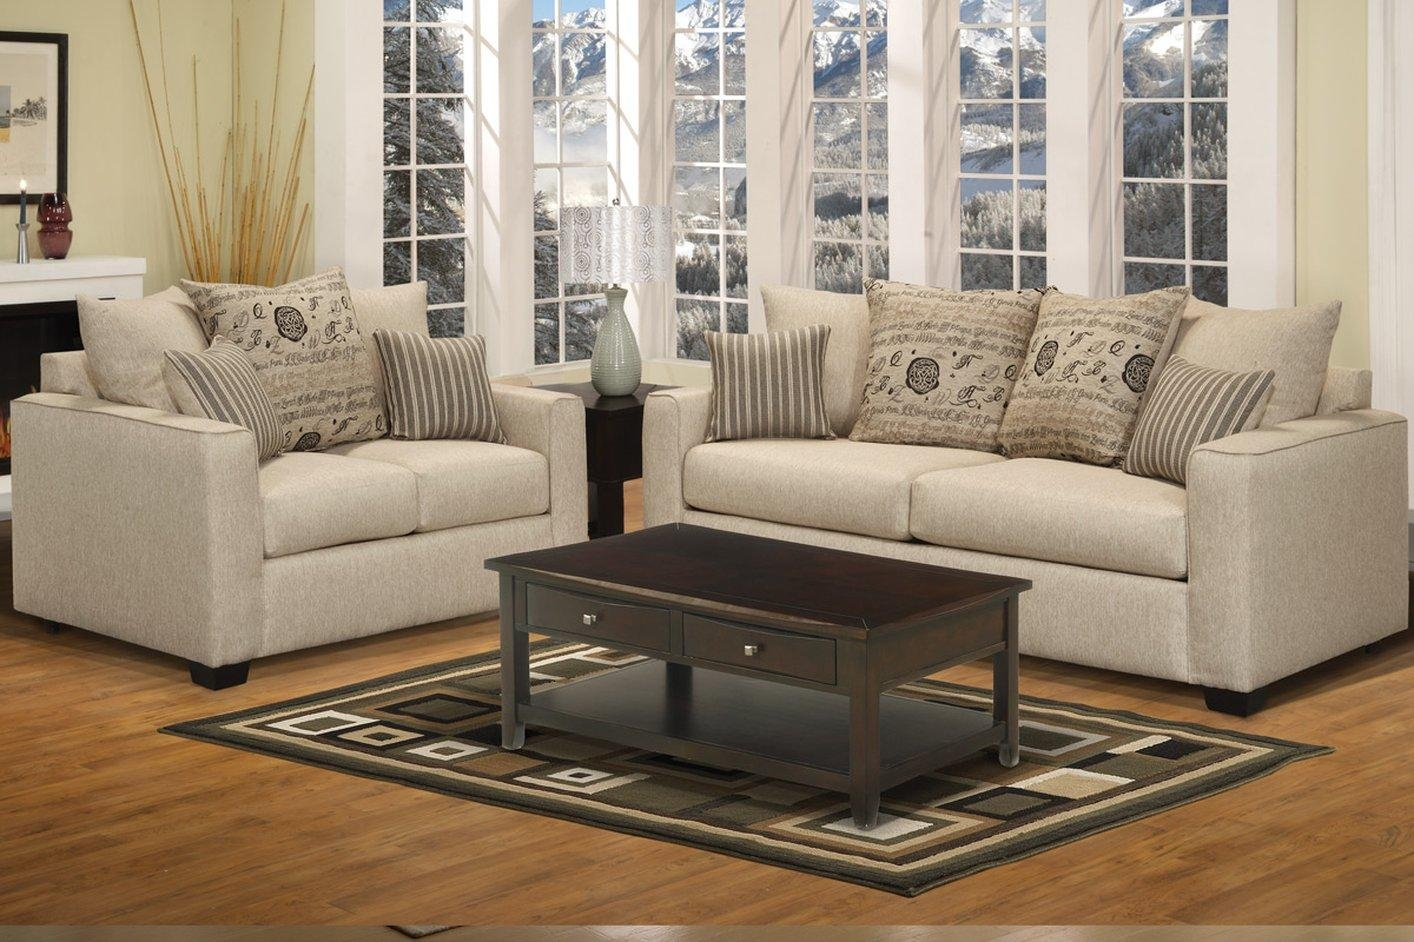 Sofa & Loveseat Set – Steal A Sofa Furniture Outlet Los Angeles Ca Intended For Sofa Loveseat And Chairs (Image 18 of 20)